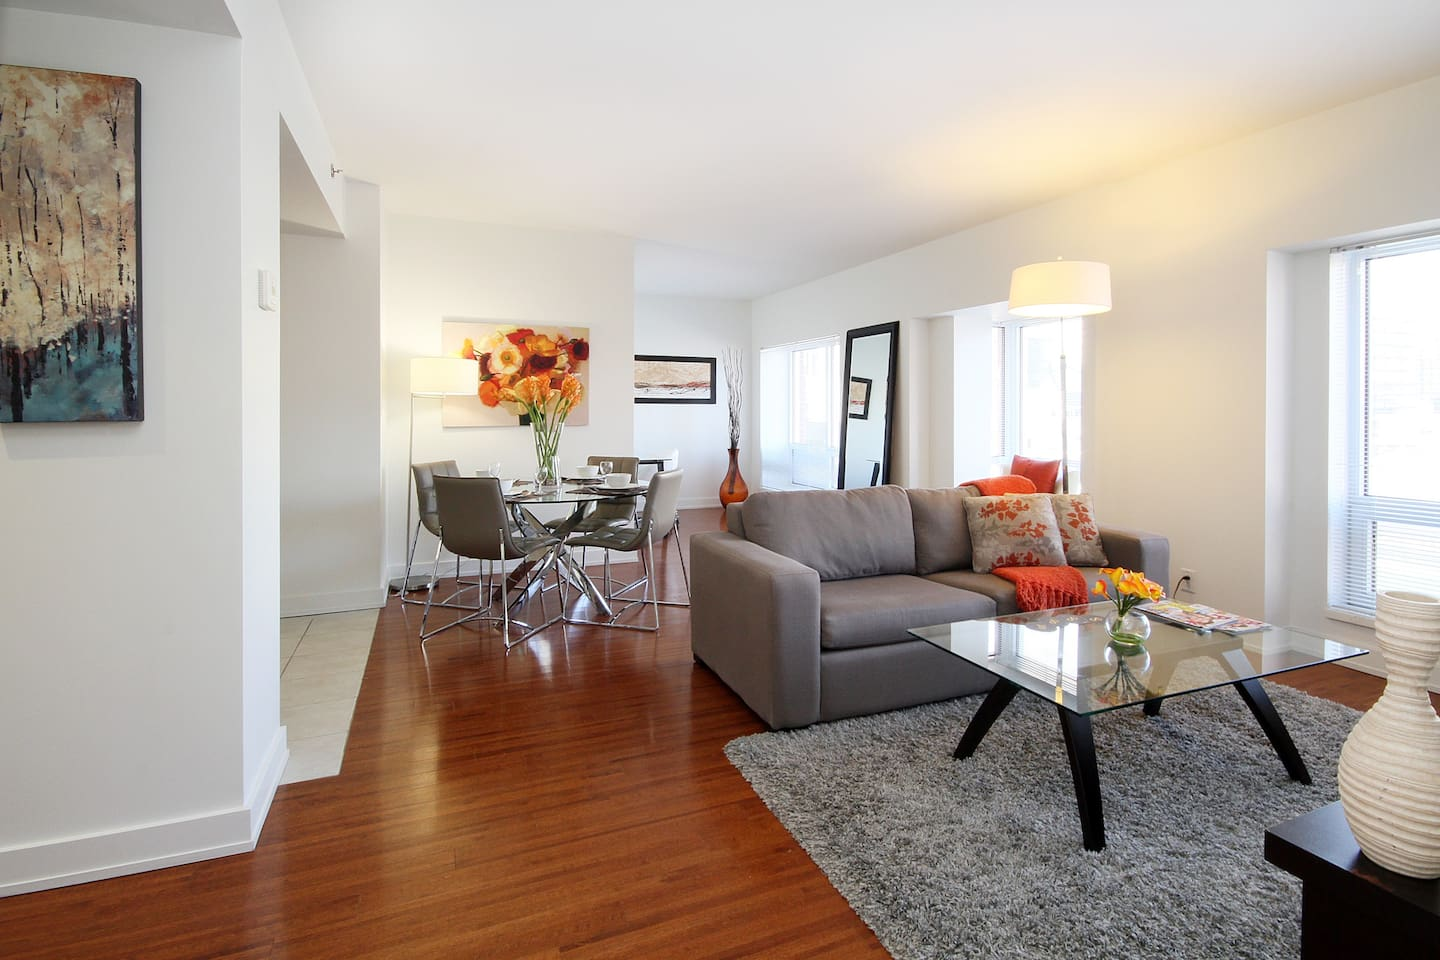 club mosaique - apartments for rent in montreal, quebec, canada